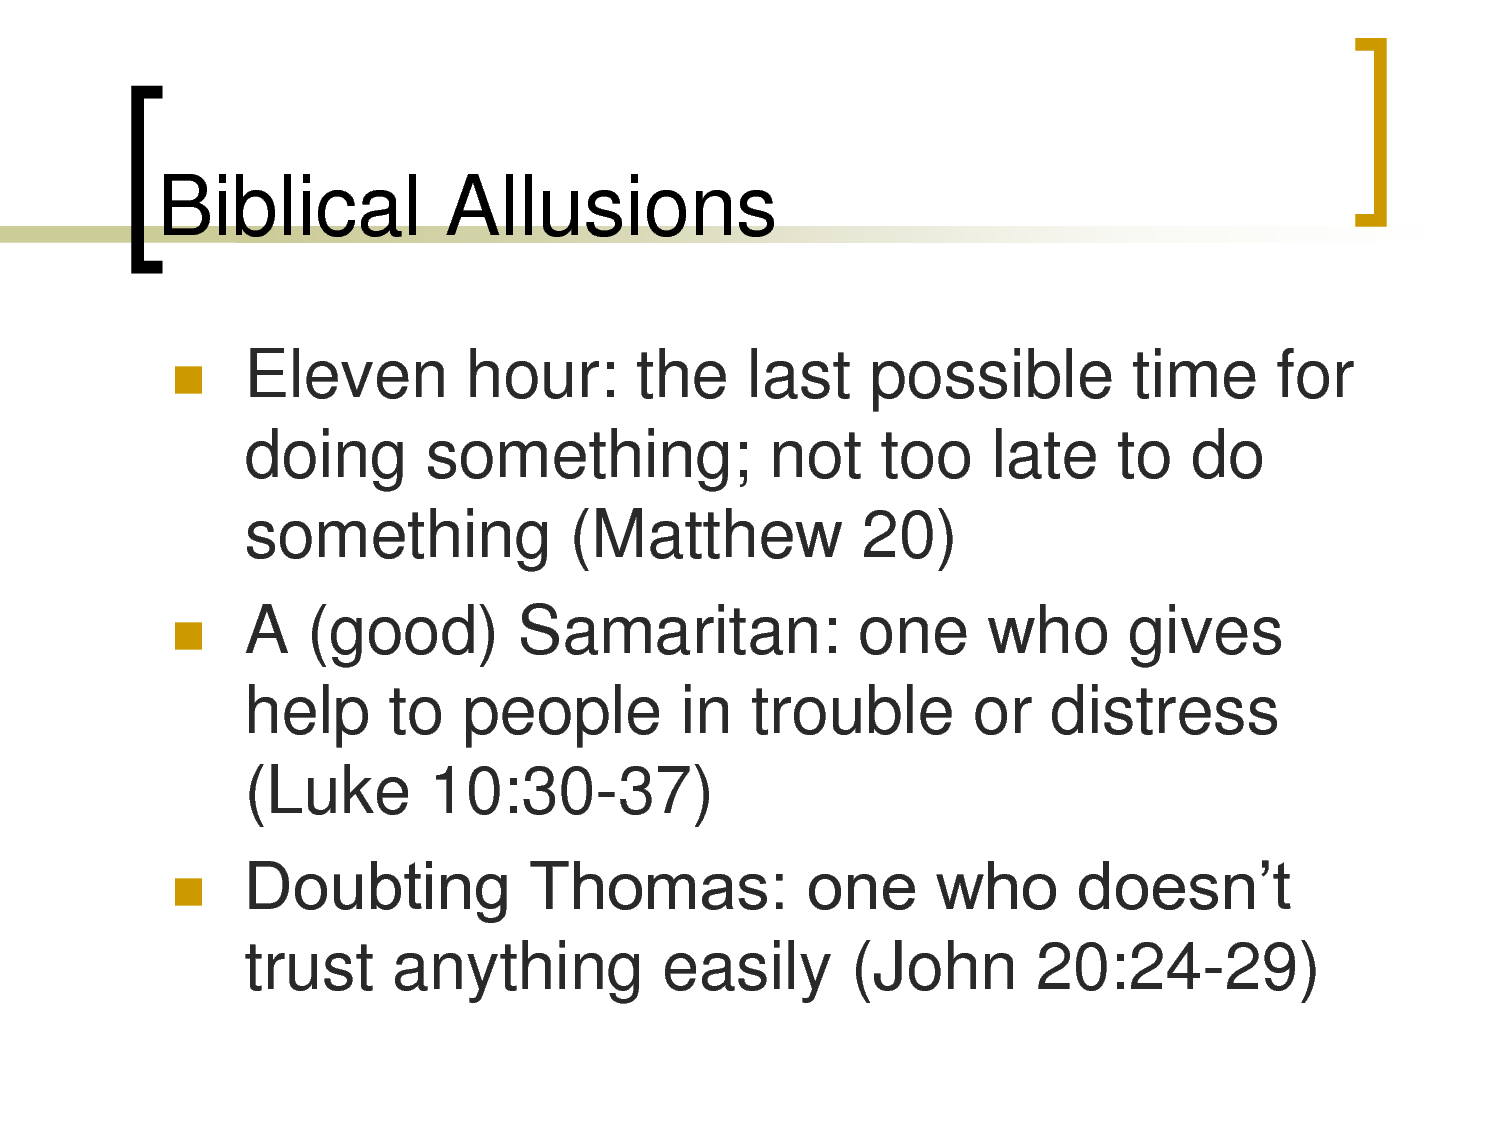 hight resolution of Biblical Allusions. In the western world